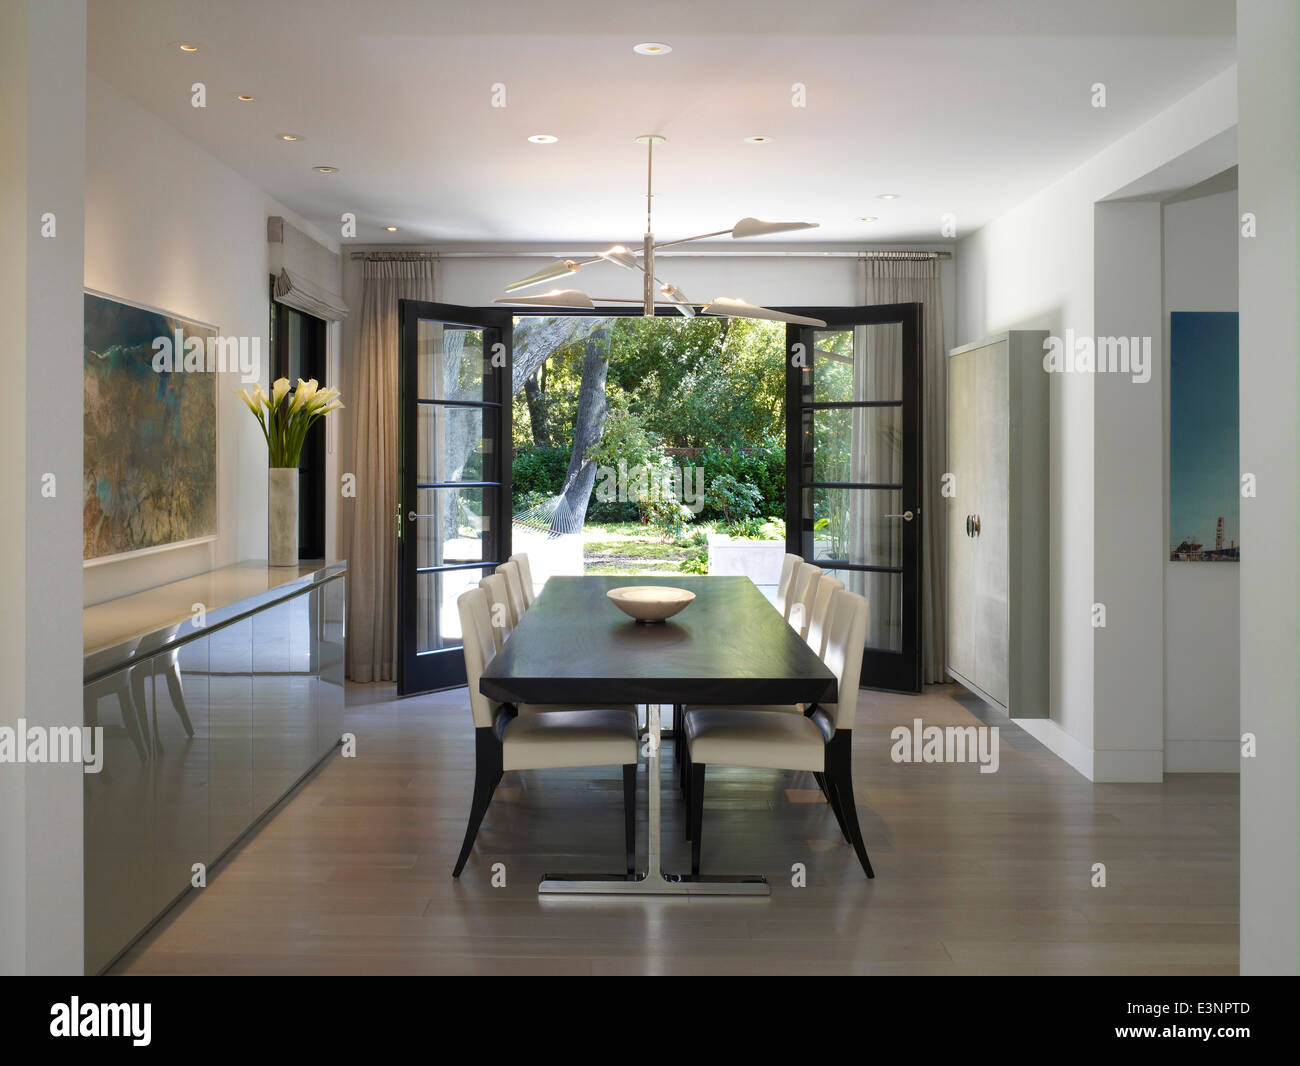 View through door to garden from dining area in Stone House Atherton California USA & View through door to garden from dining area in Stone House Stock ...